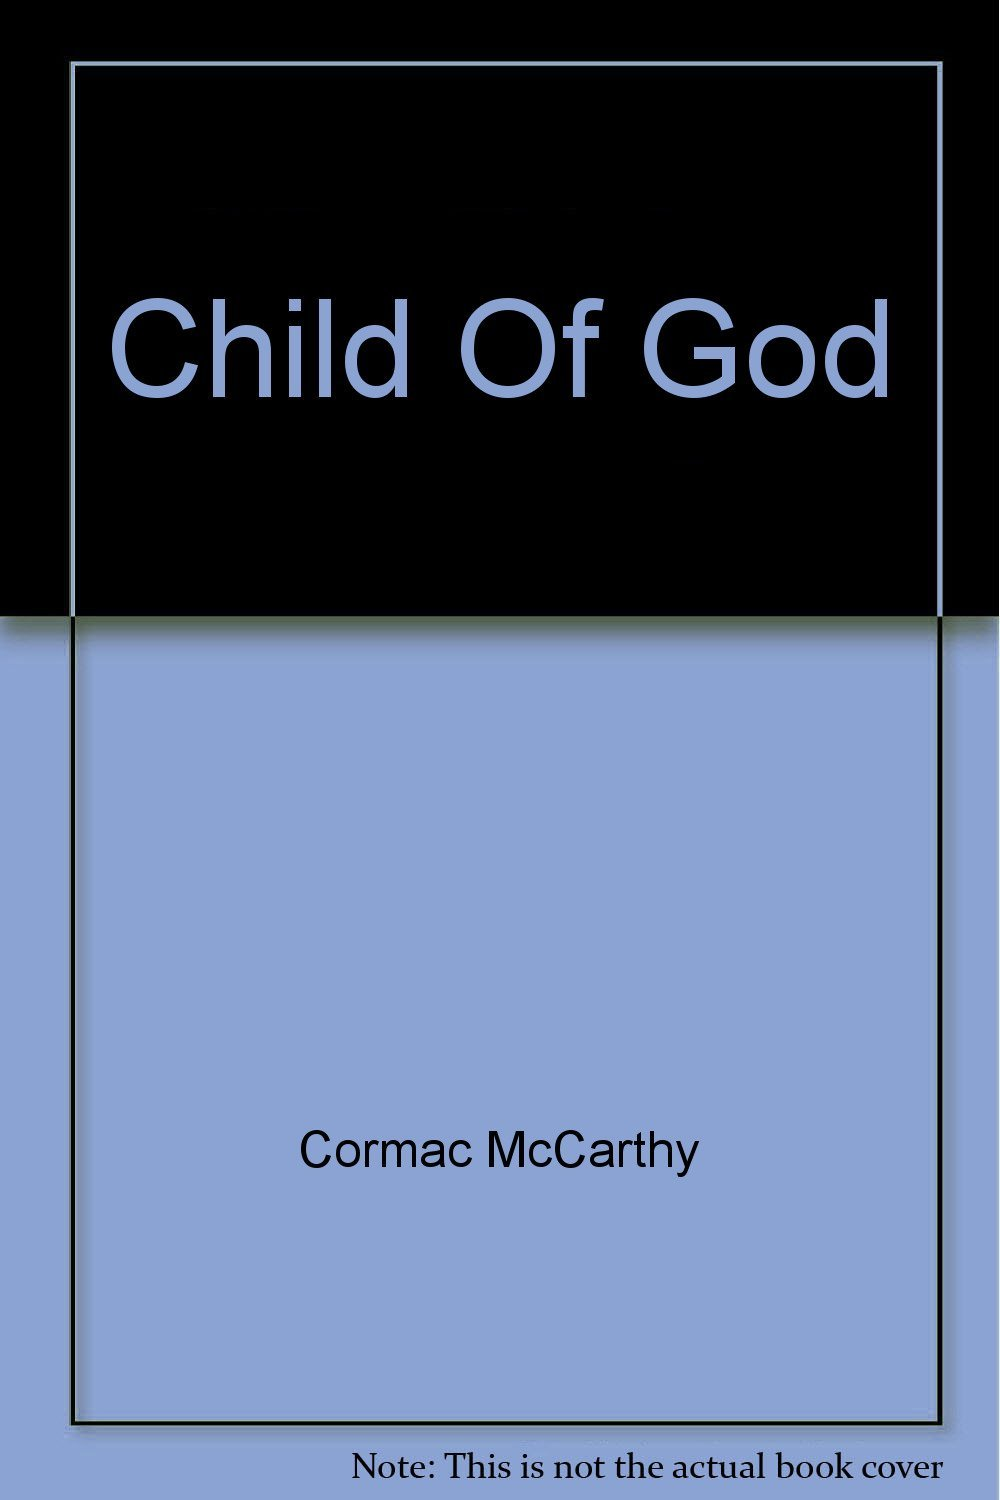 Child-Of-God-Cormac-McCarthy-New-Book